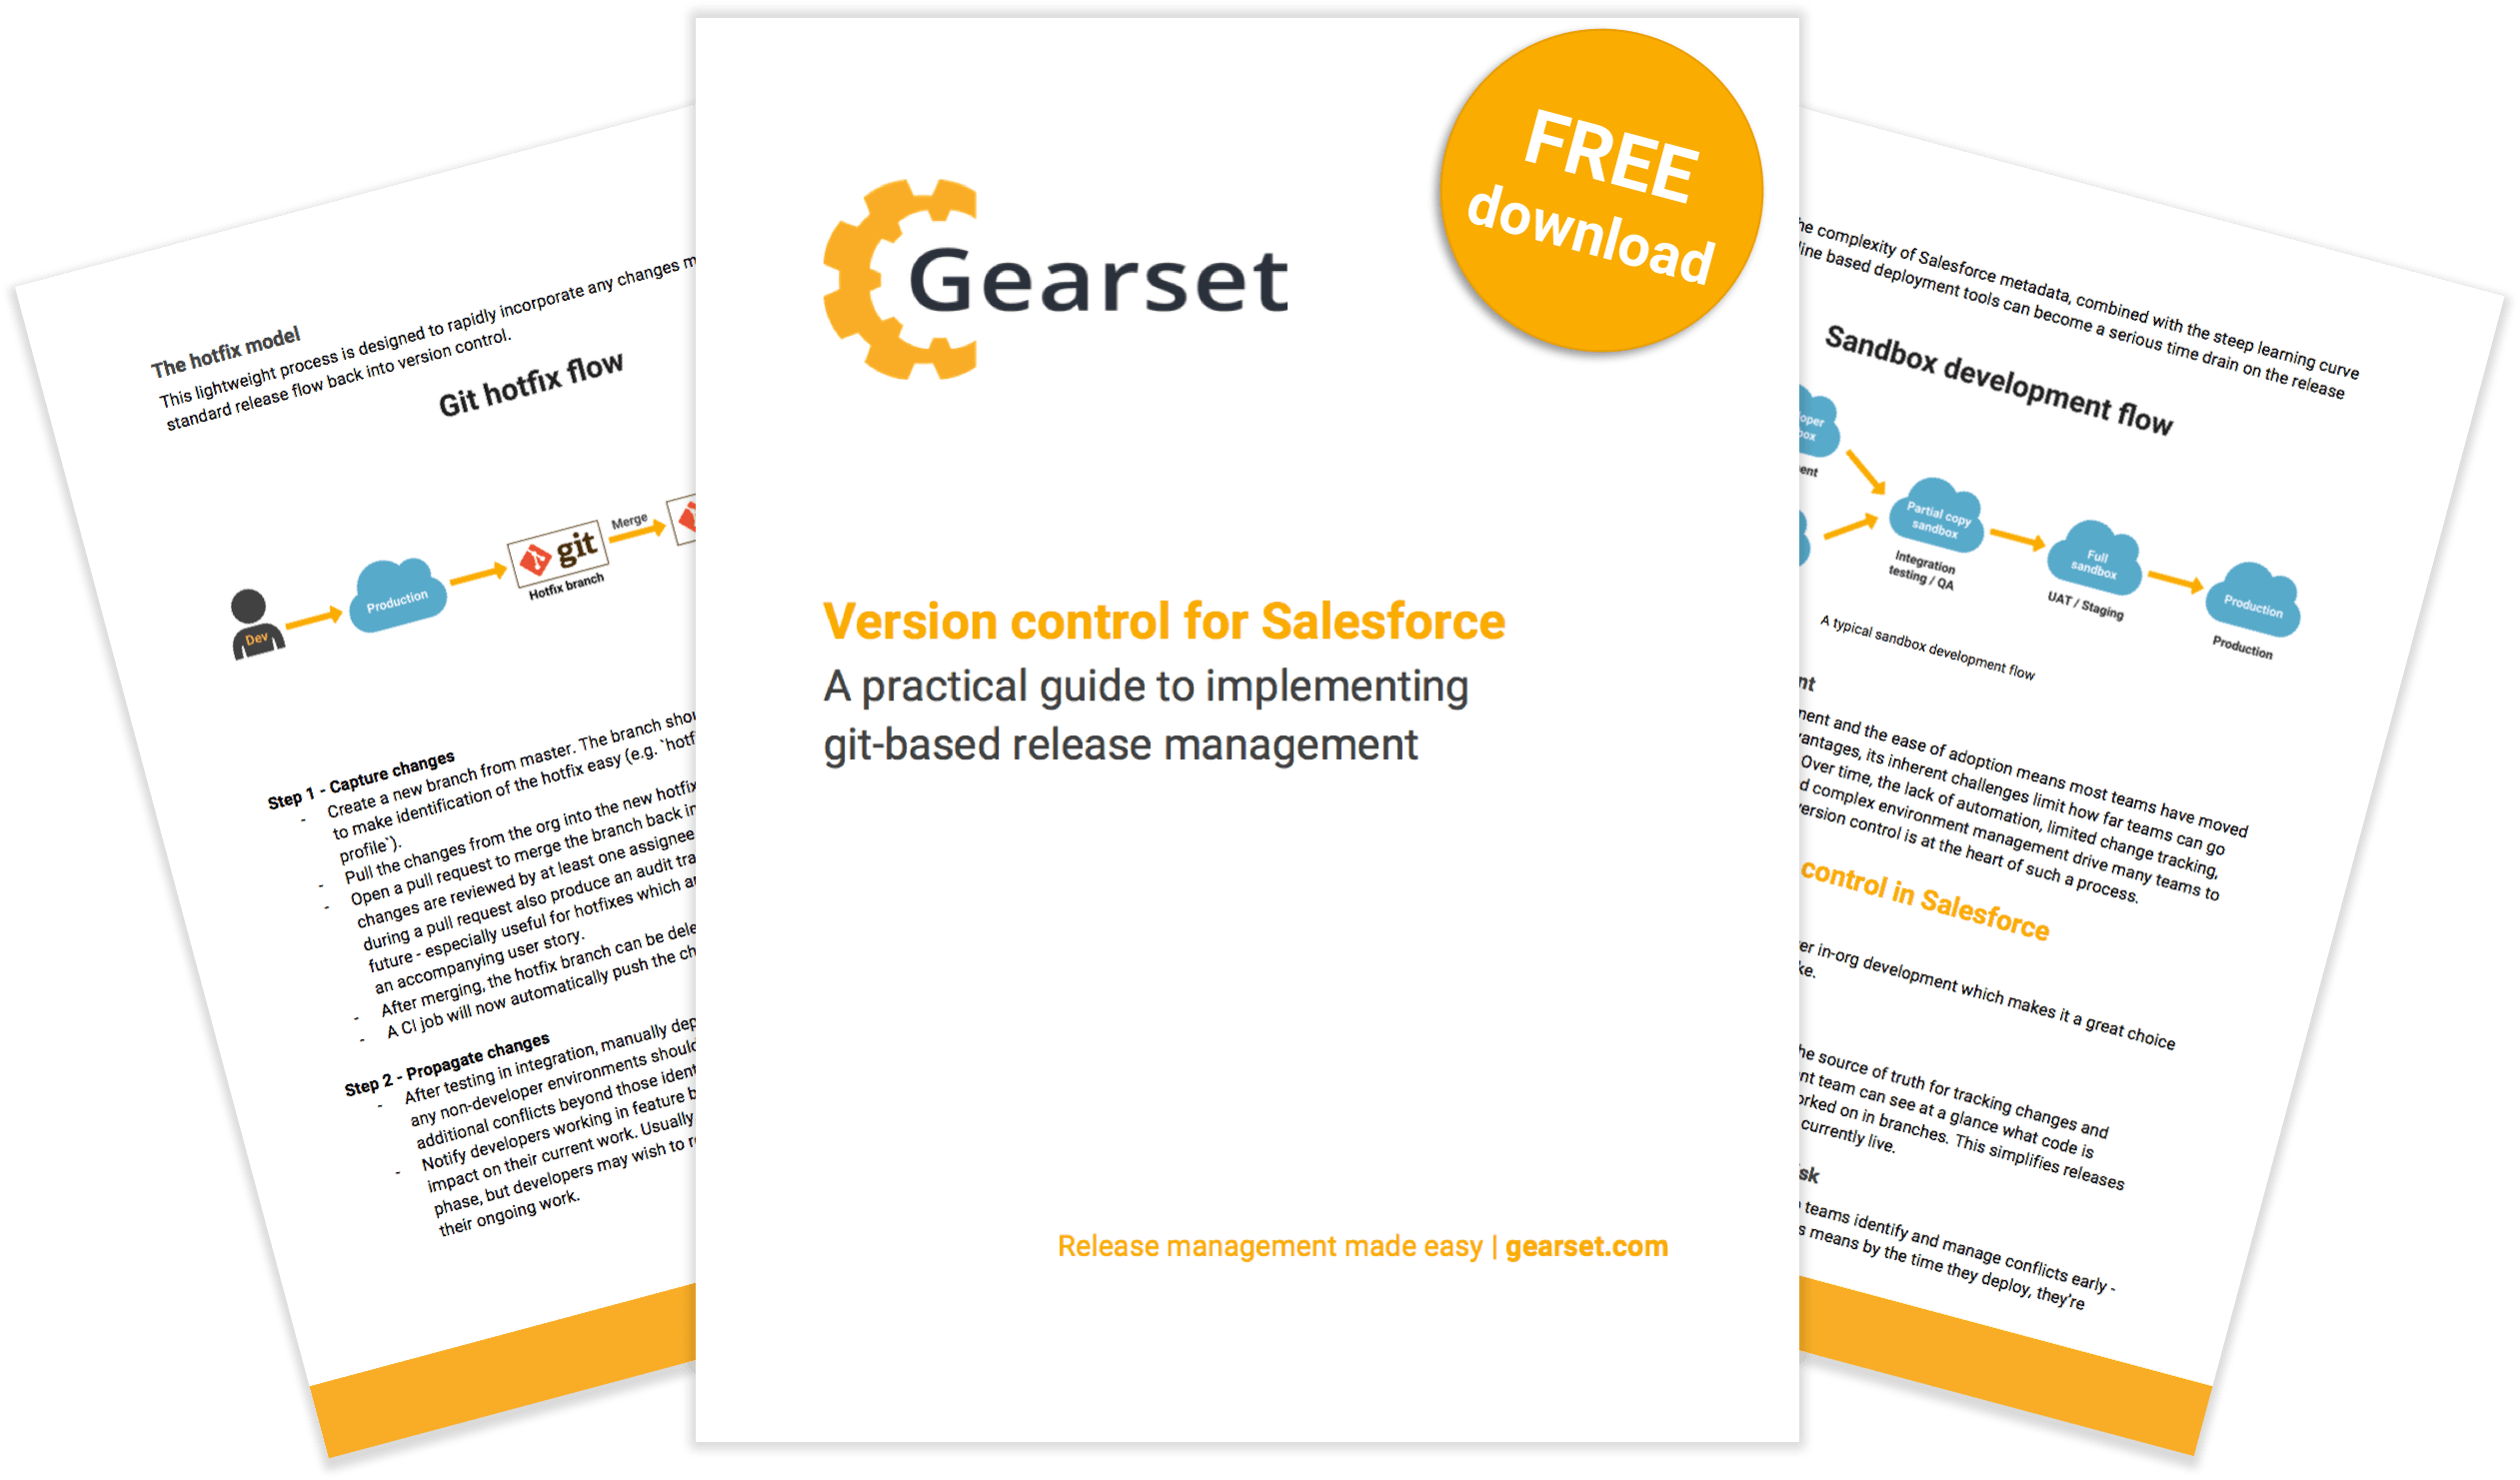 Version control for Salesforce: a practical guide to implementing git-based release management